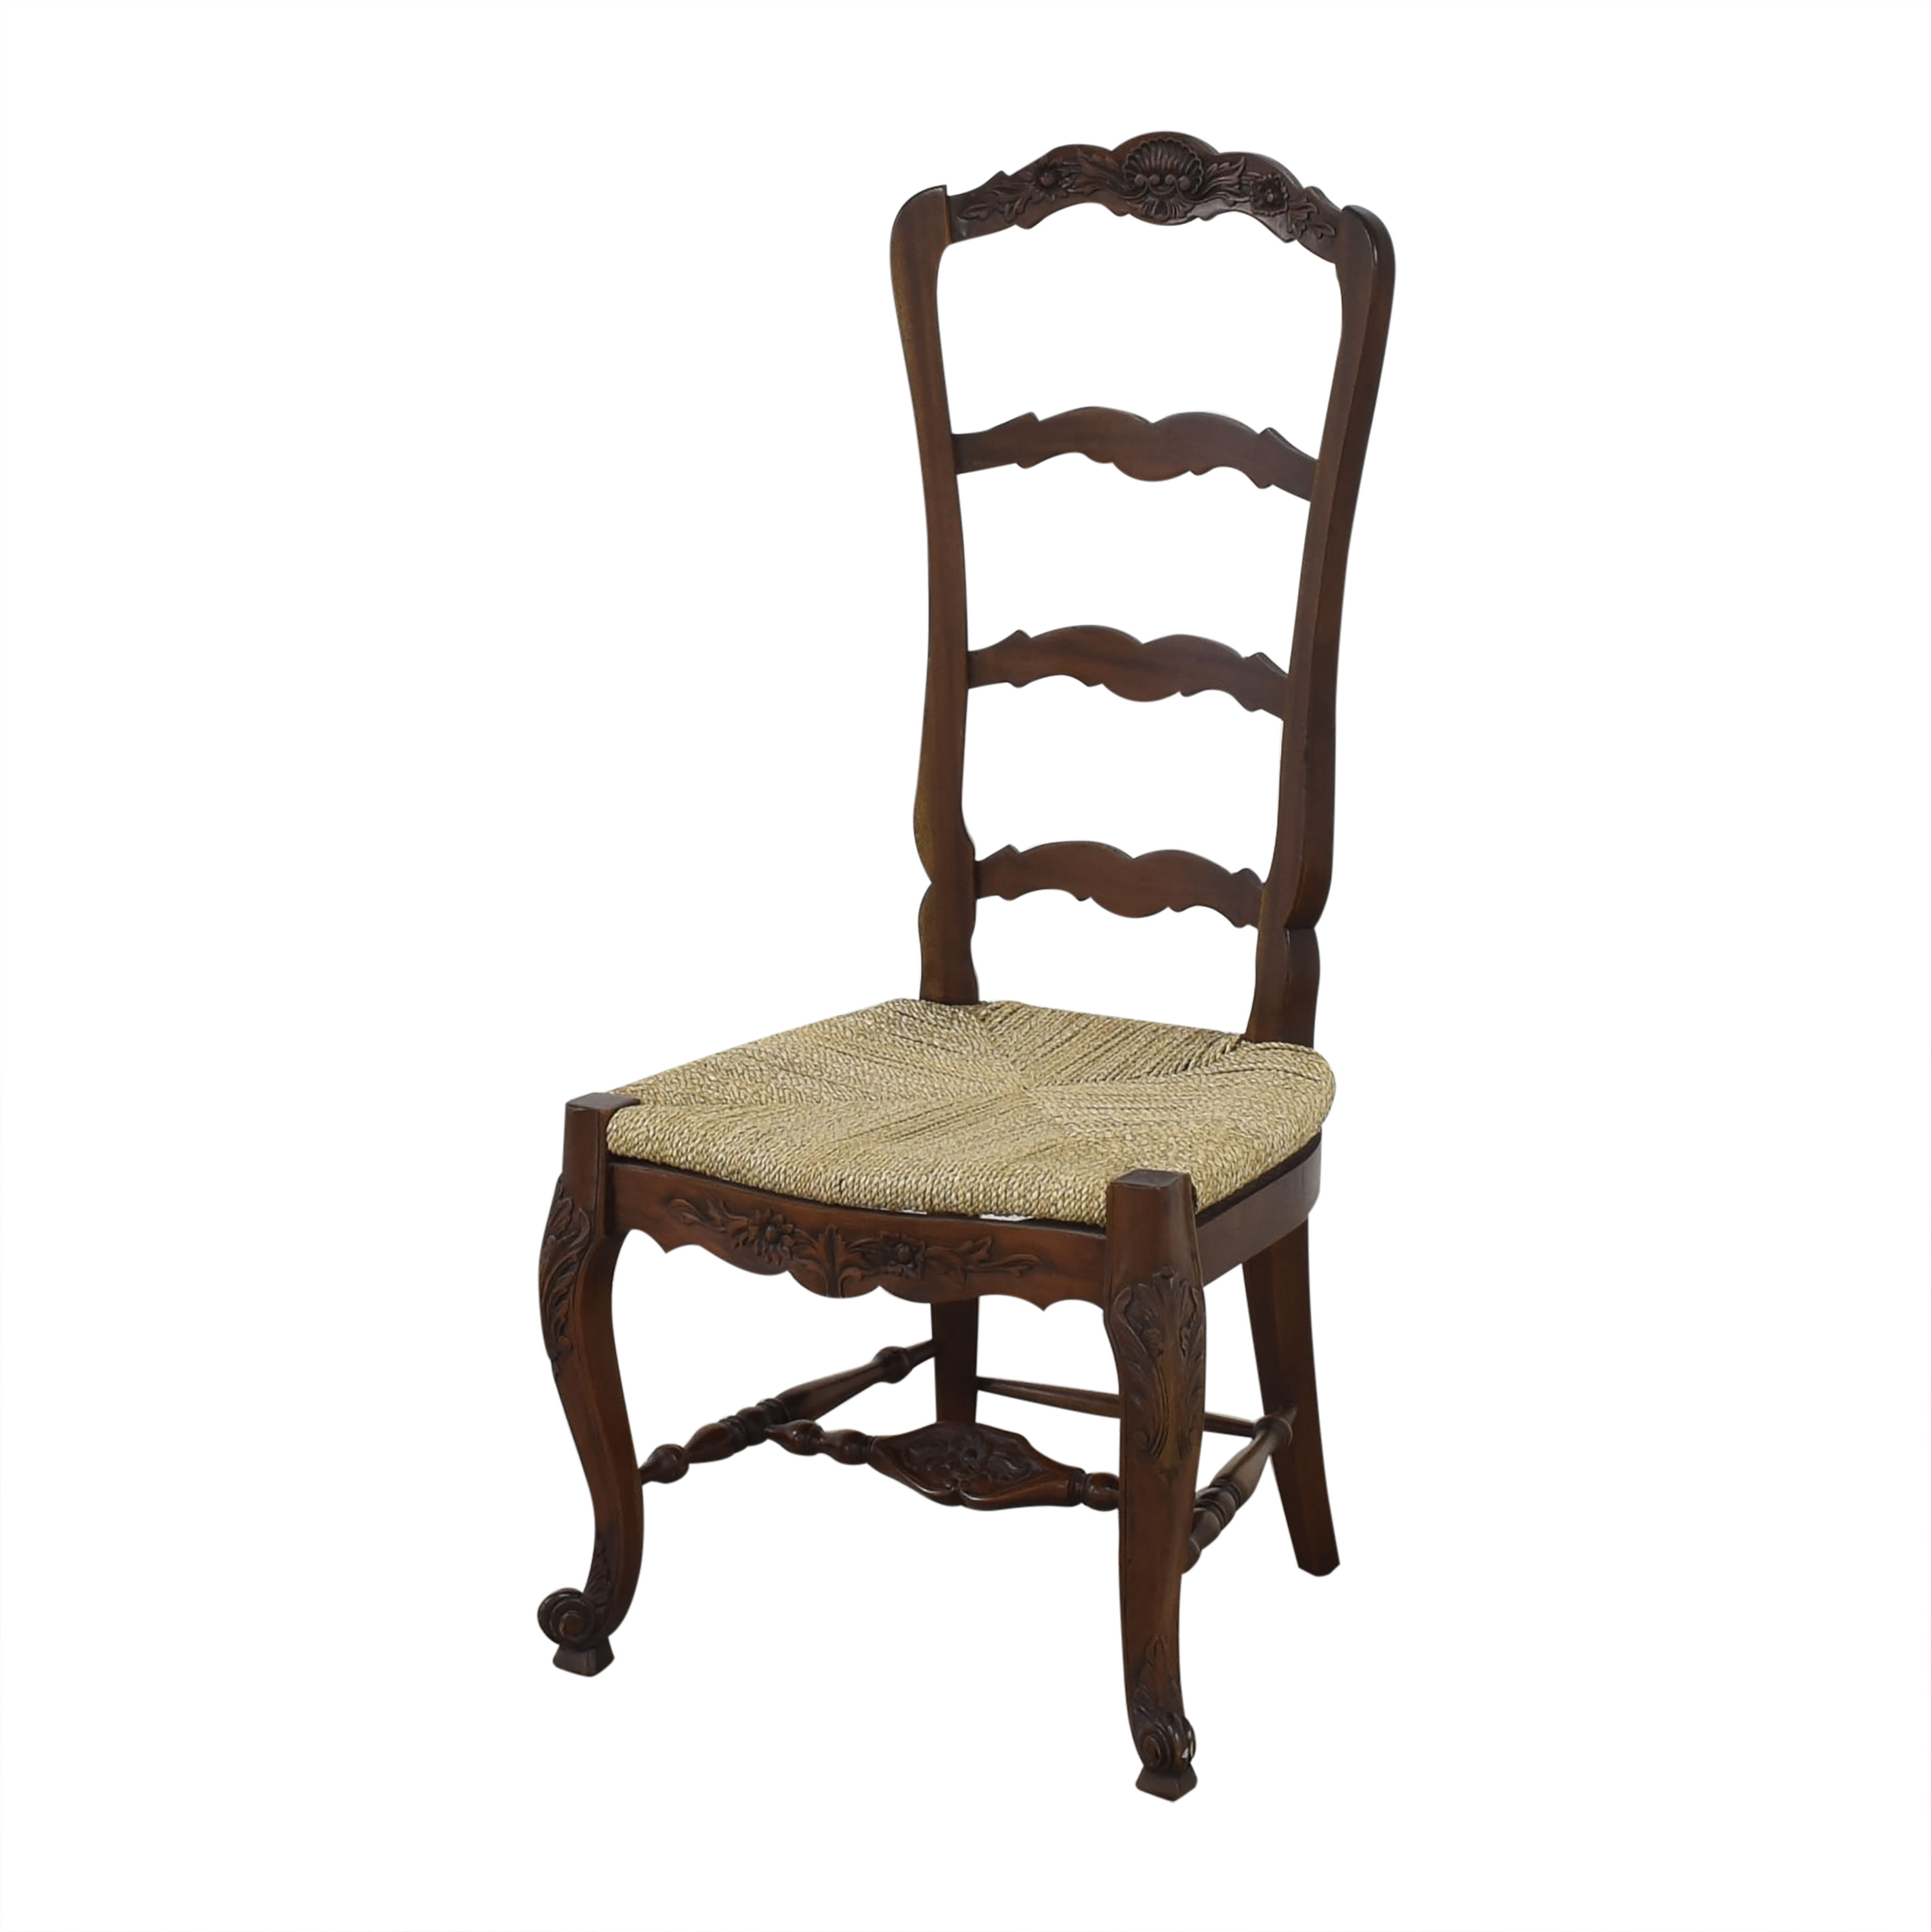 Marie Albert Marie Albert French Country Ladder Back Dining Chairs nyc